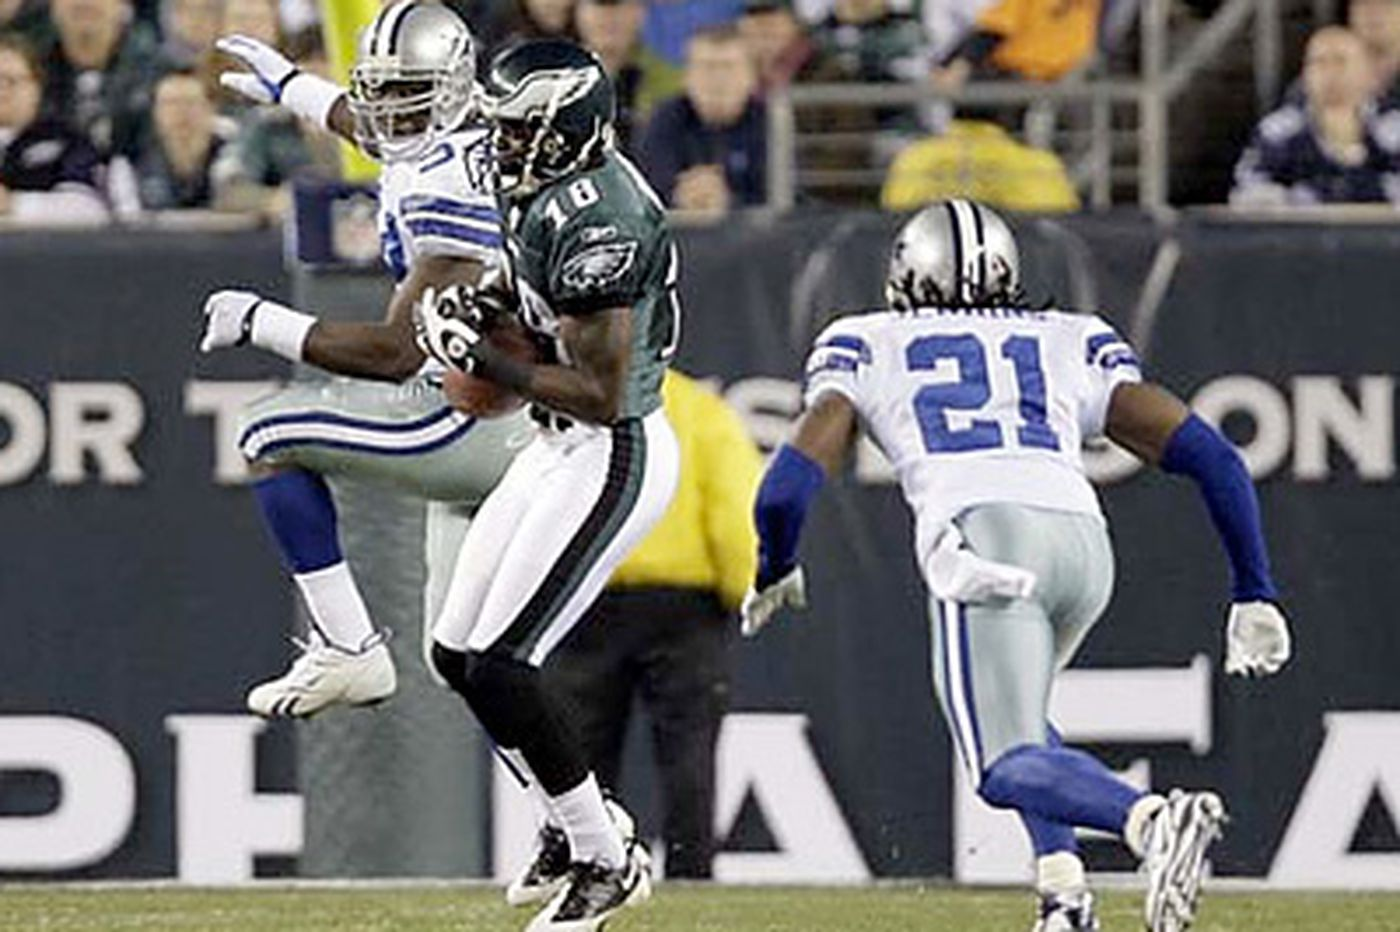 Eagles Notes: Eagles could face Cowboys twice